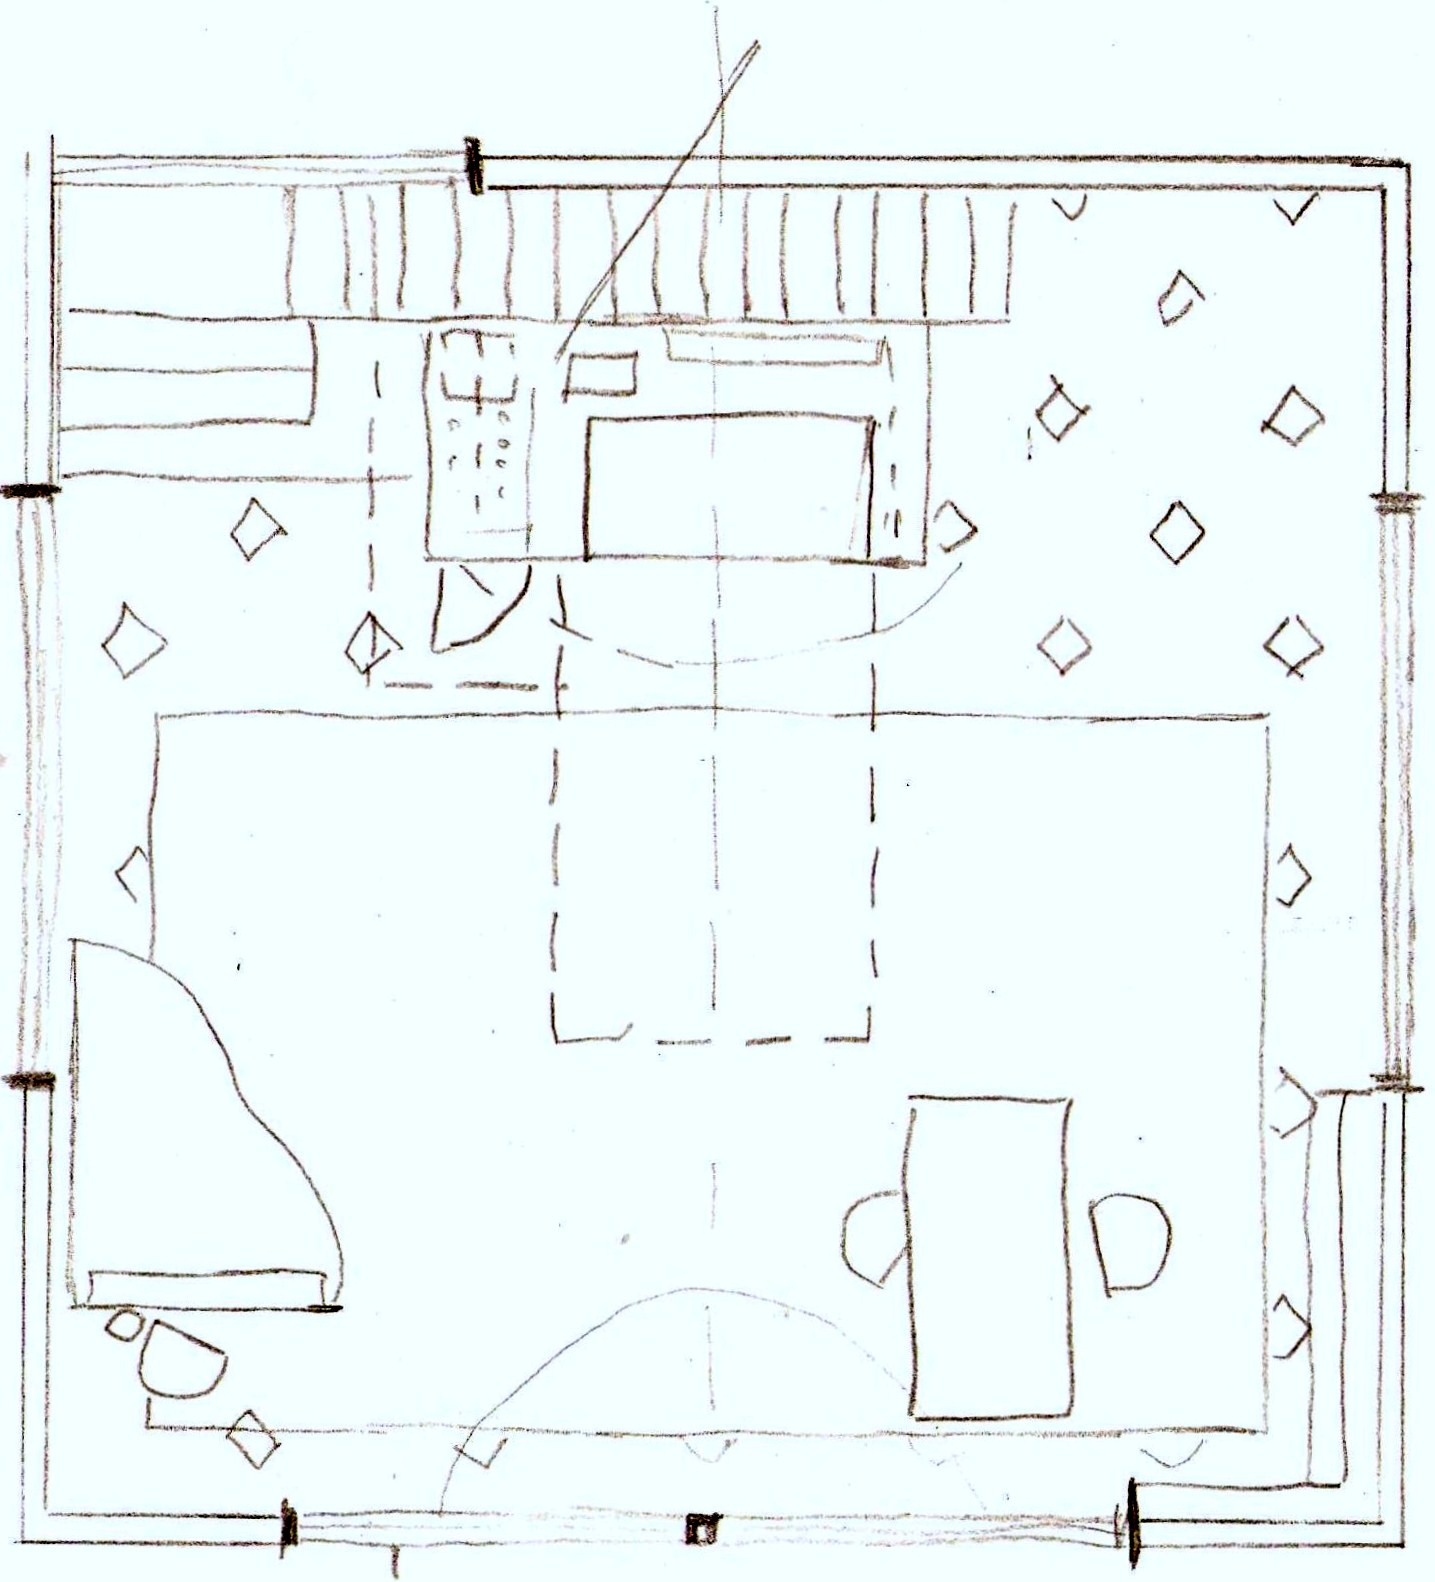 Plan Elevation Perspective : My masterpiece sj a site plan section elevation